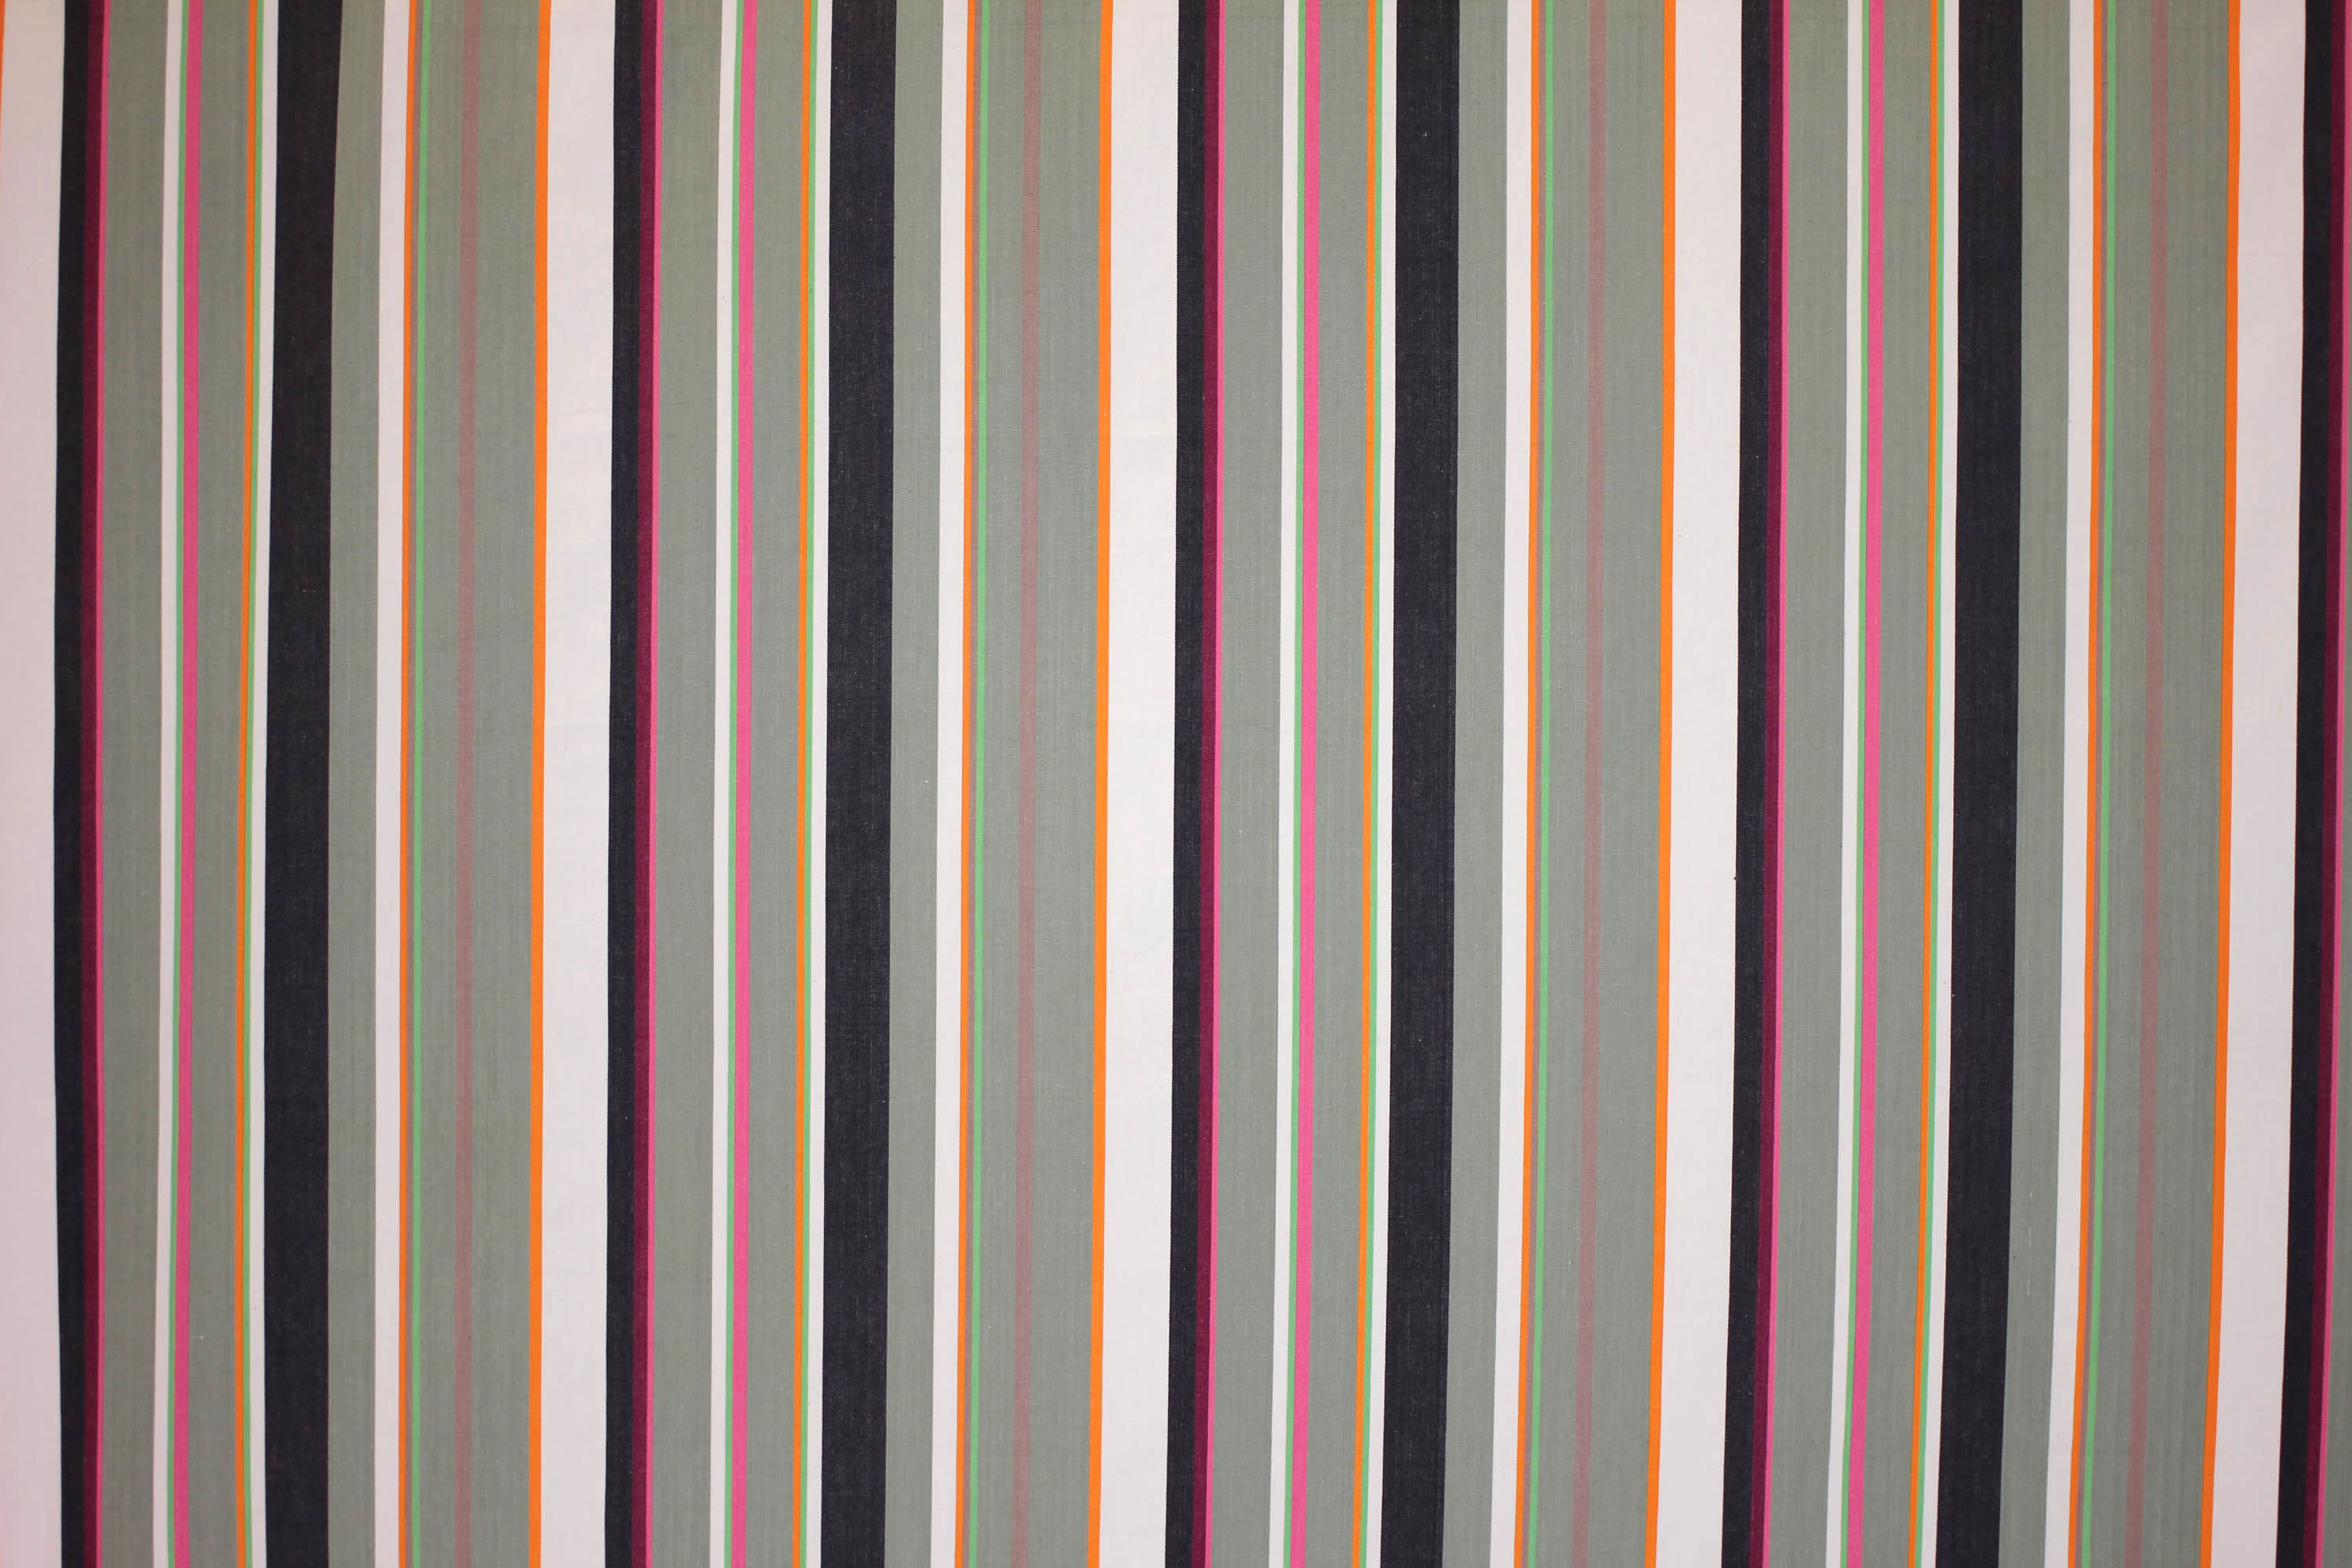 Grey Striped Fabrics | Stripe Cotton Fabrics | Striped Curtain Fabrics | Upholstery Fabrics  Darts Stripes